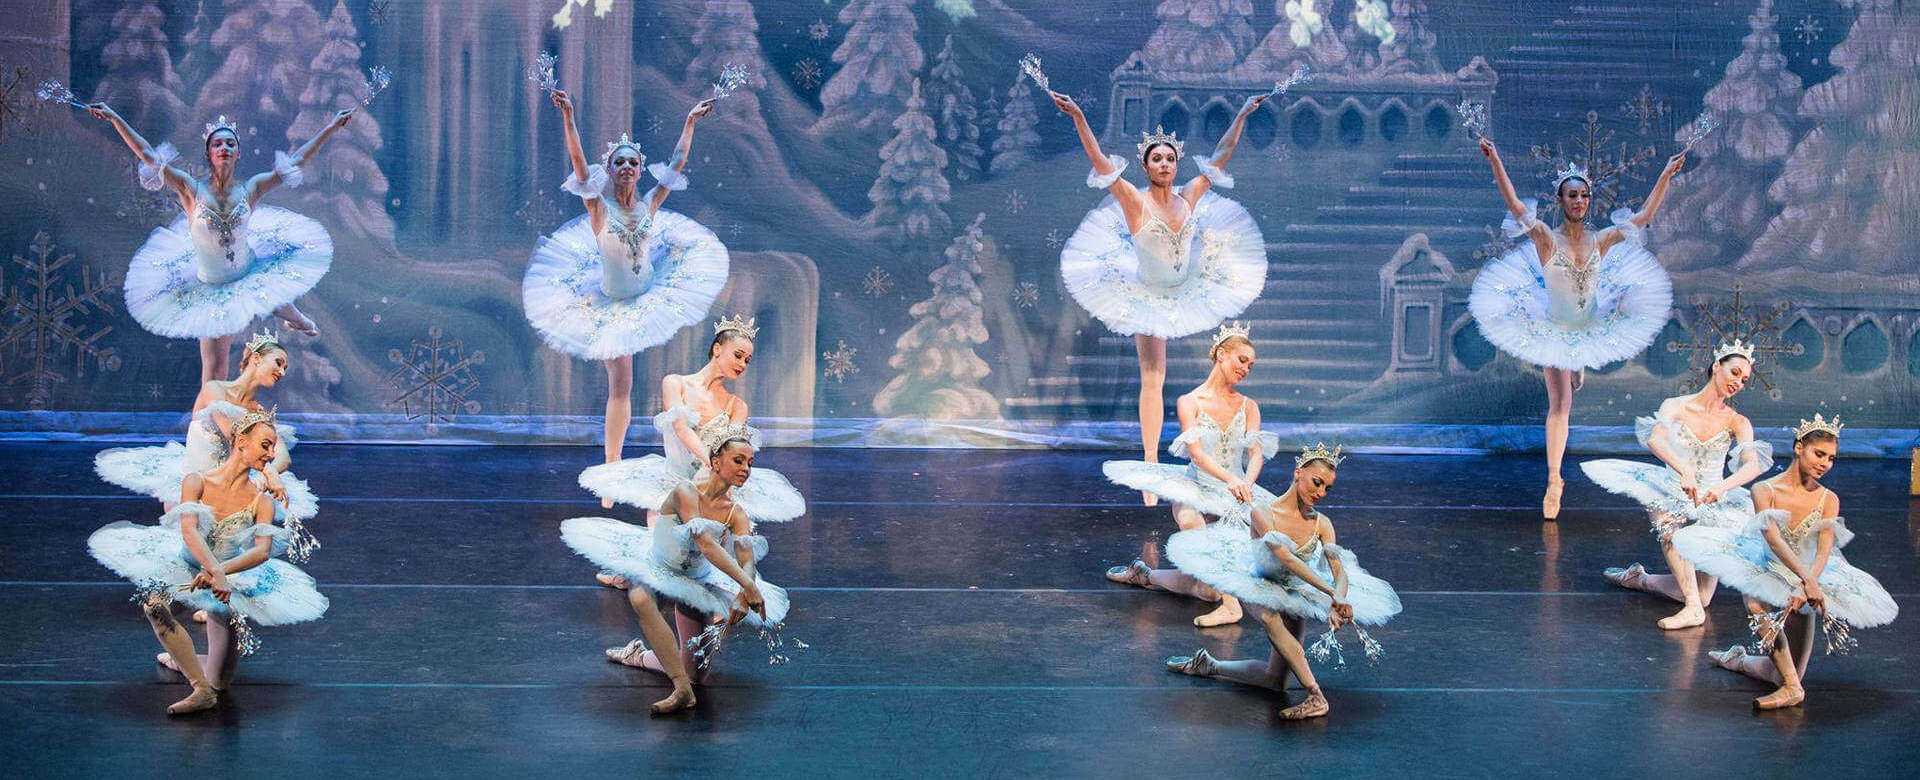 The Nutcracker in Florence